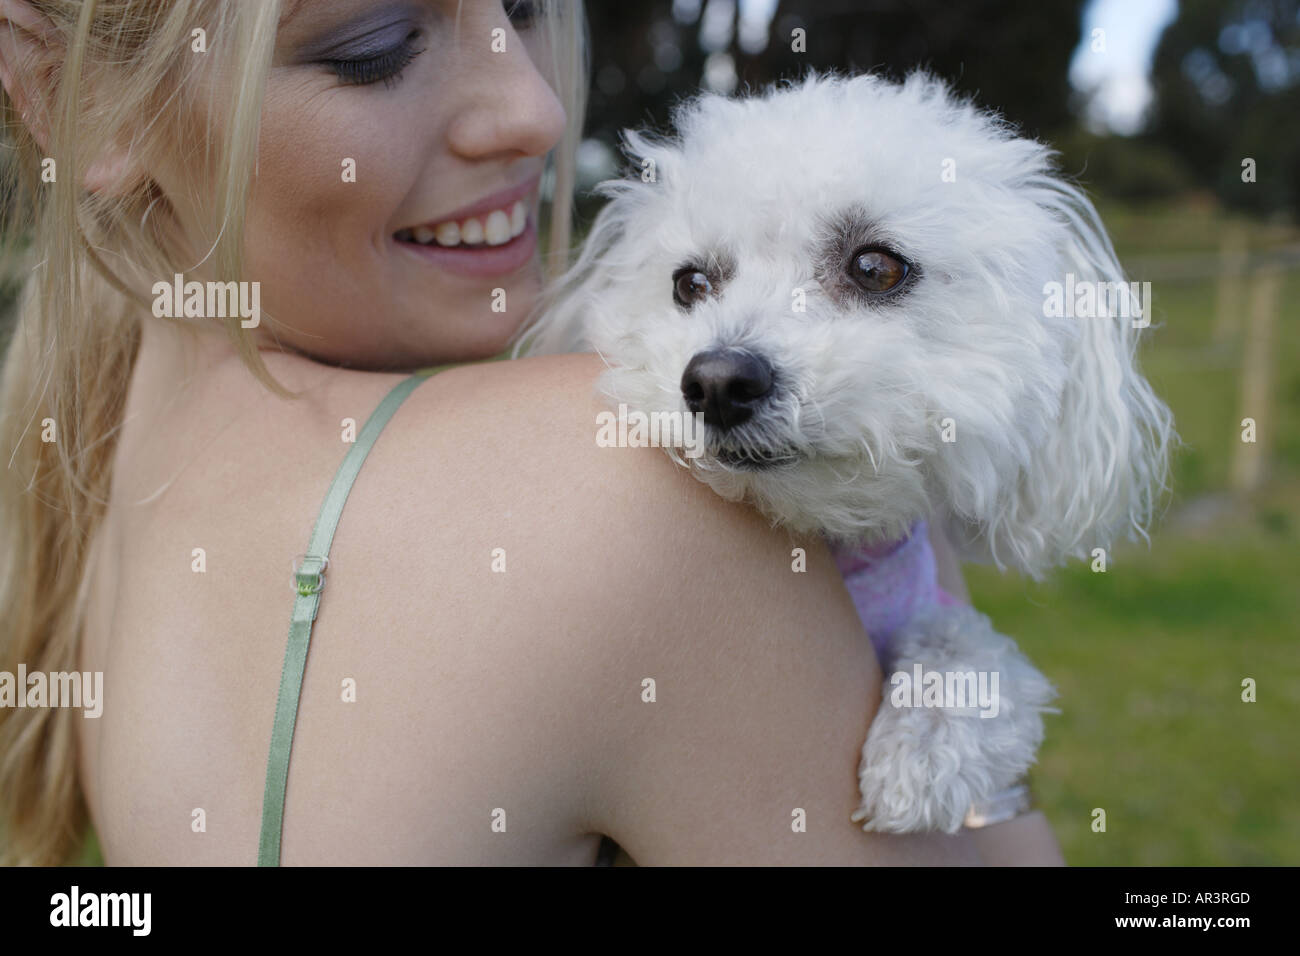 Young woman and pet dog in park - Stock Image